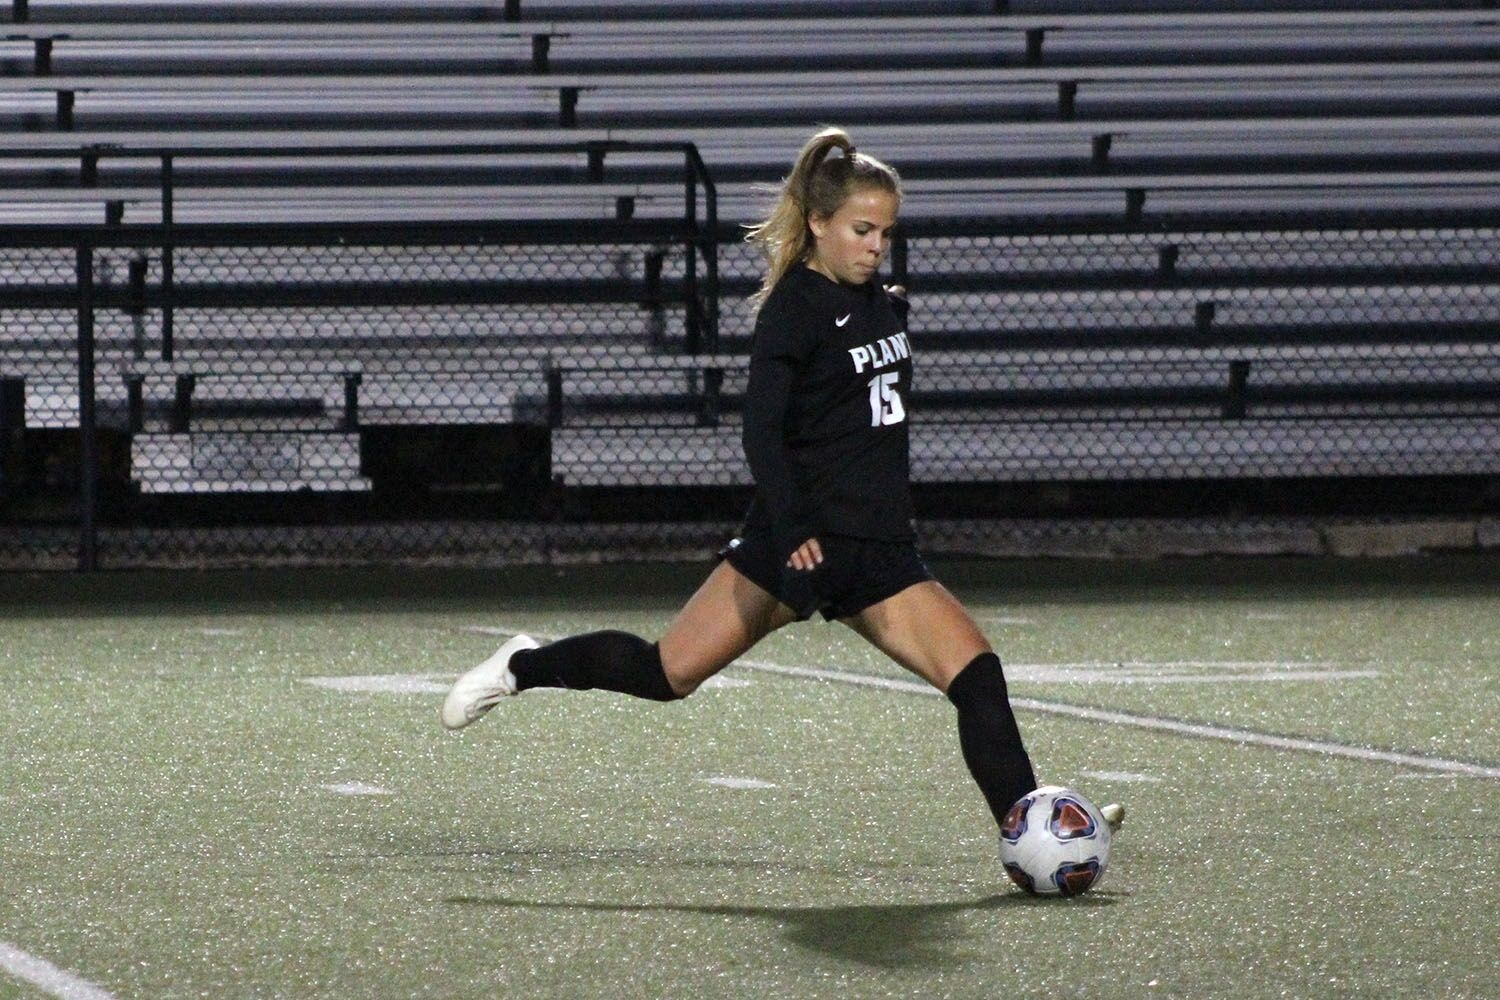 Passing the ball, senior captain Ansley Melendi looks for an open teammate Jan. 15 at Dad's Stadium. It was the annual senior night game where the teammates said goodbye to their senior teammates.